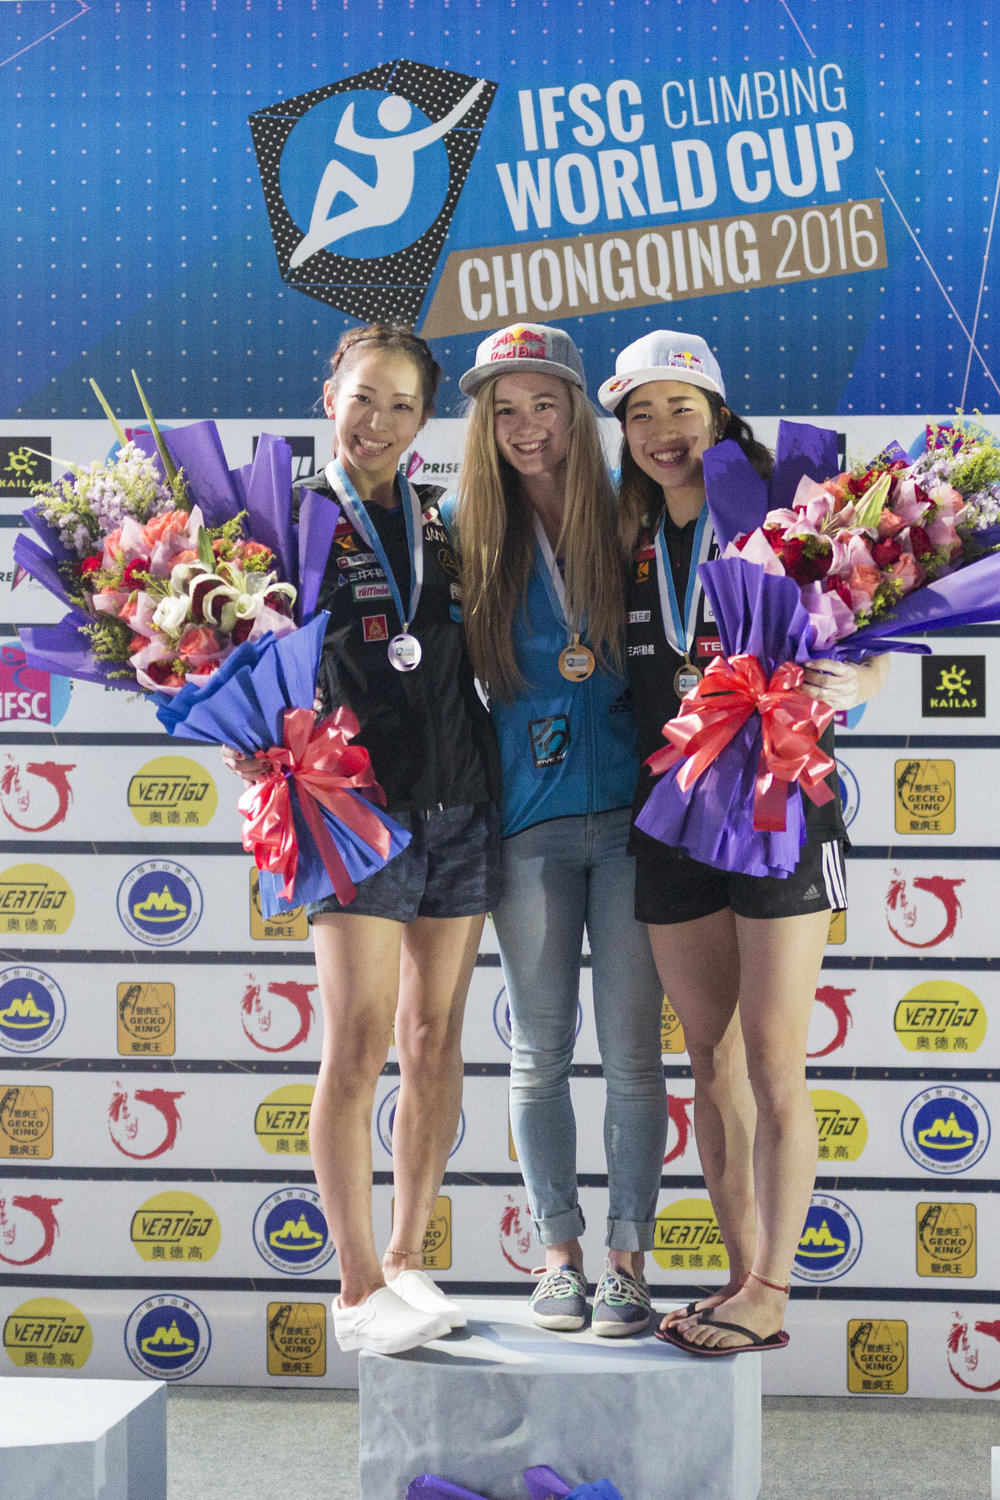 Akiyo Noguchi, Shauna Coxsey & Miho Nonaka on the podium. Photo: Heiko Wilhelm